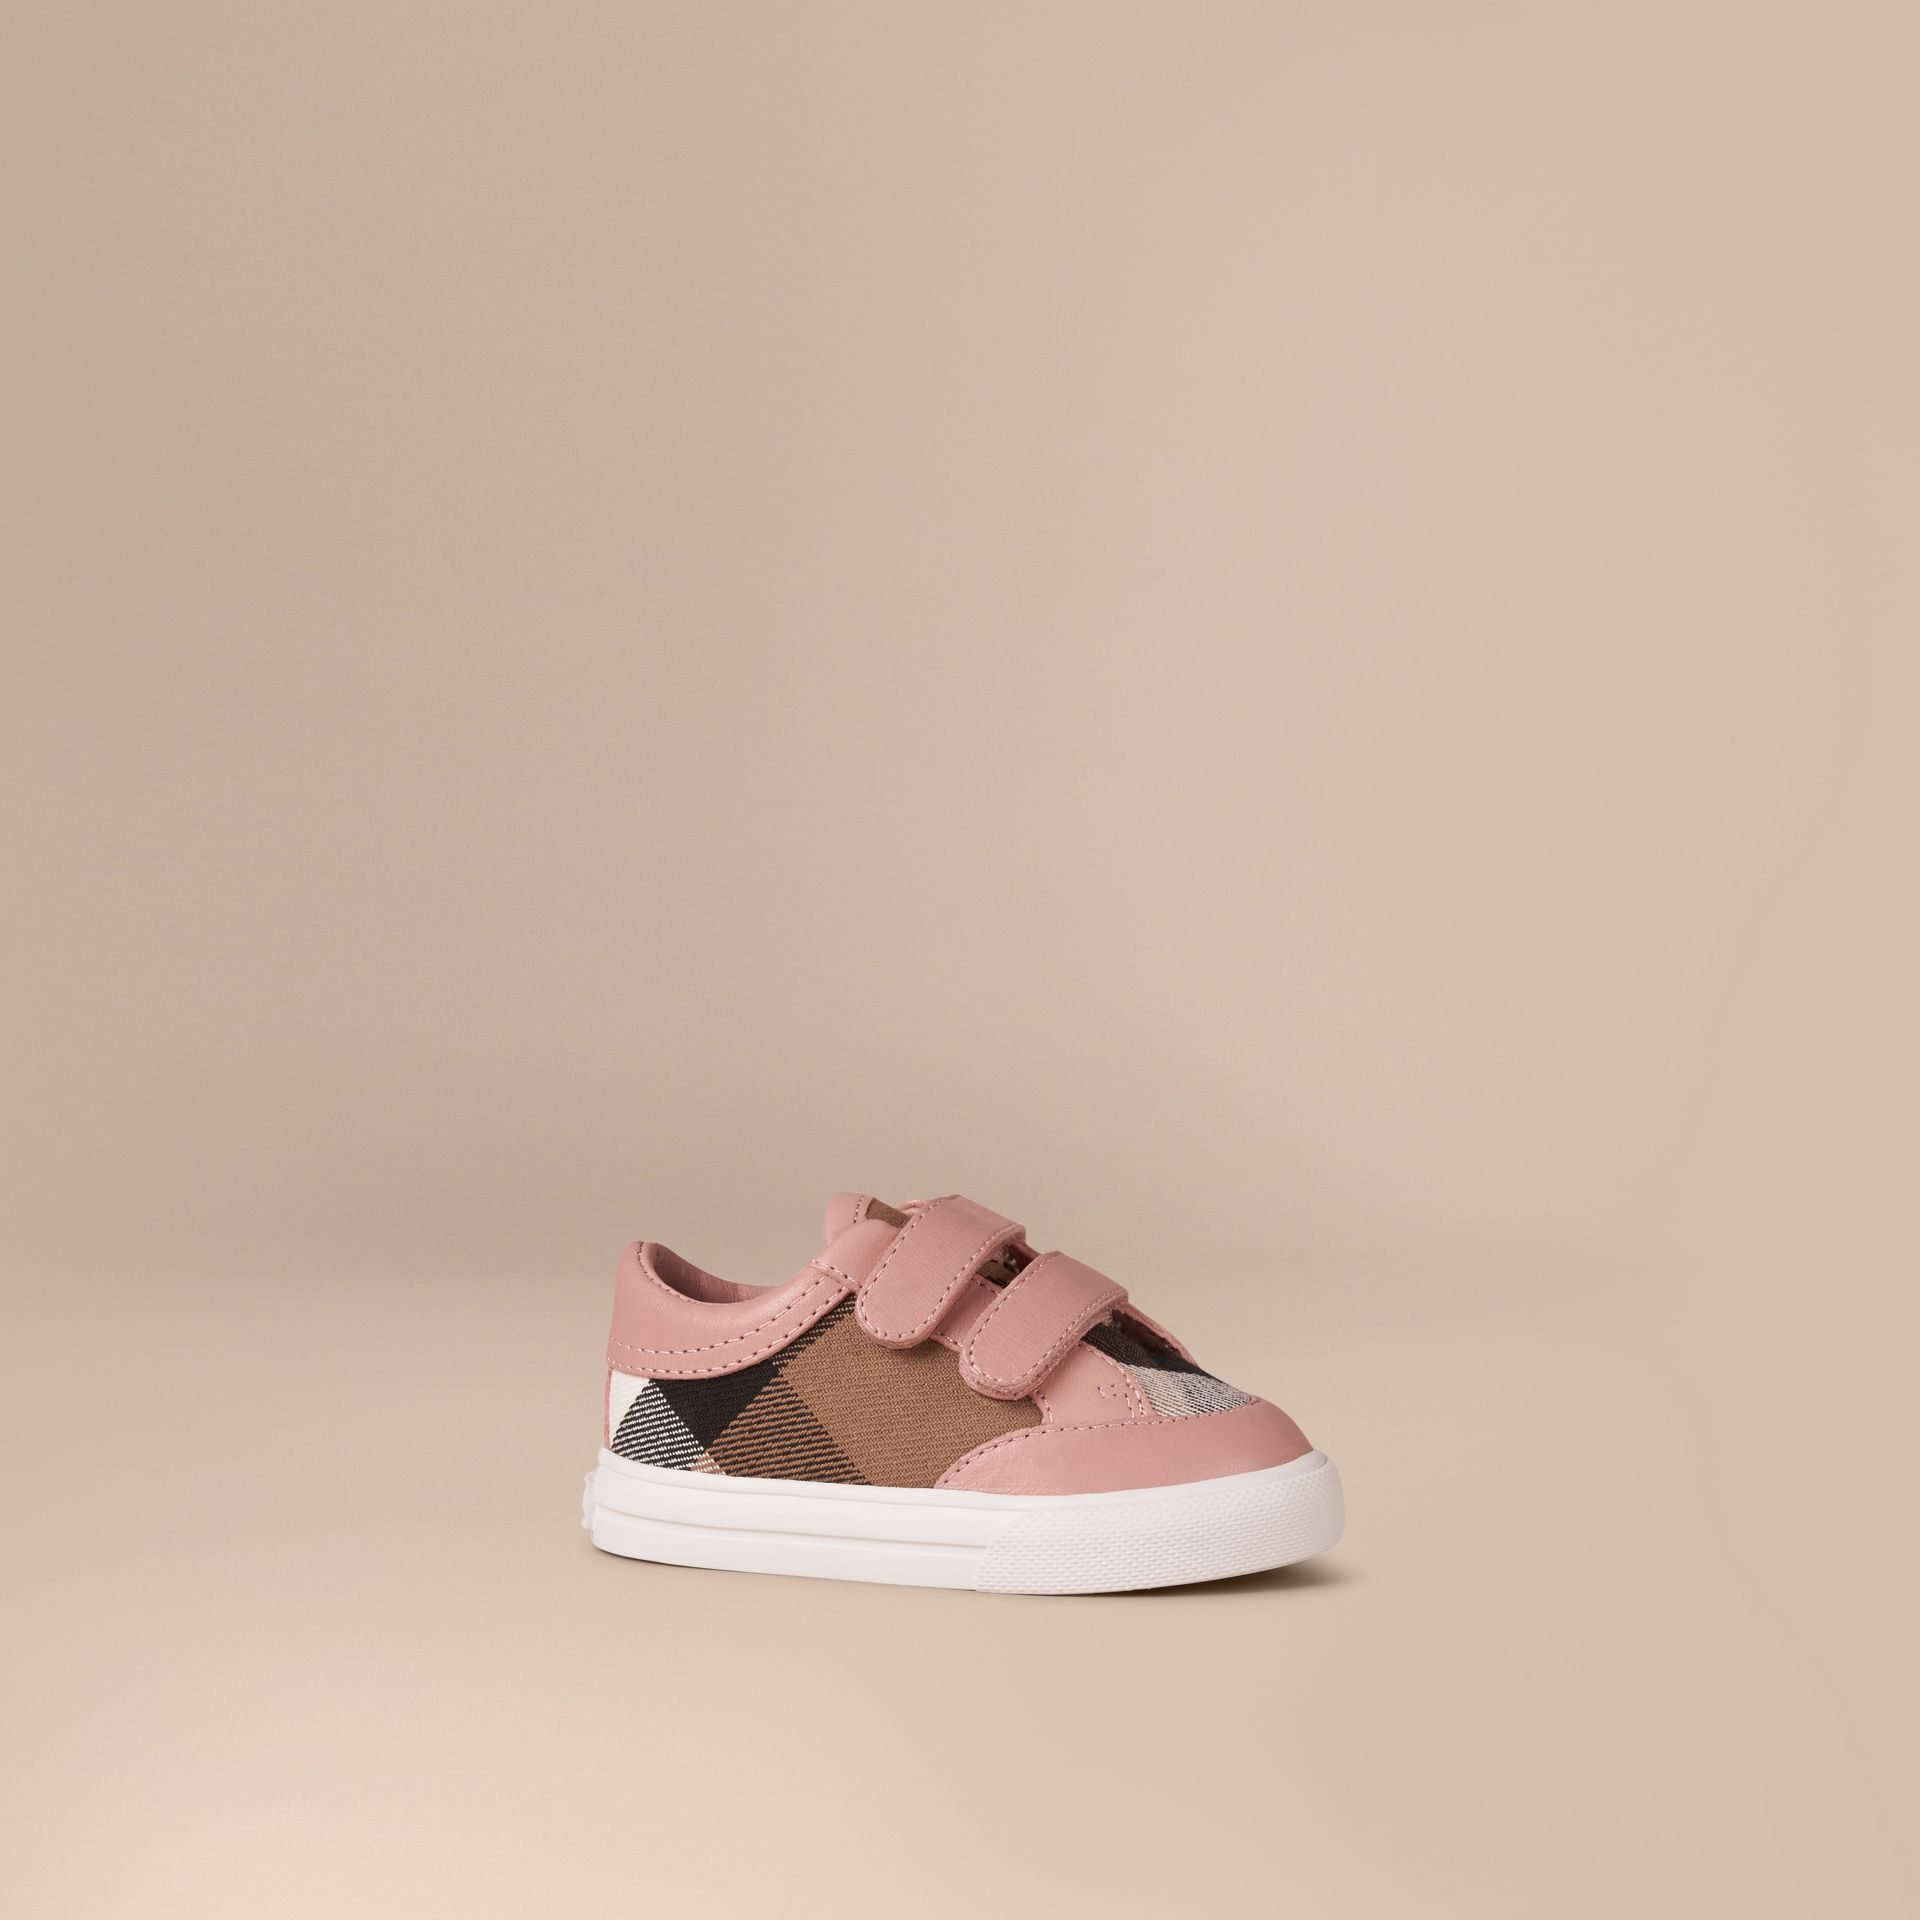 Tennis en coton House check et cuir (Camaïeu Rose Pivoine) - Enfant | Burberry - photo de la galerie 1